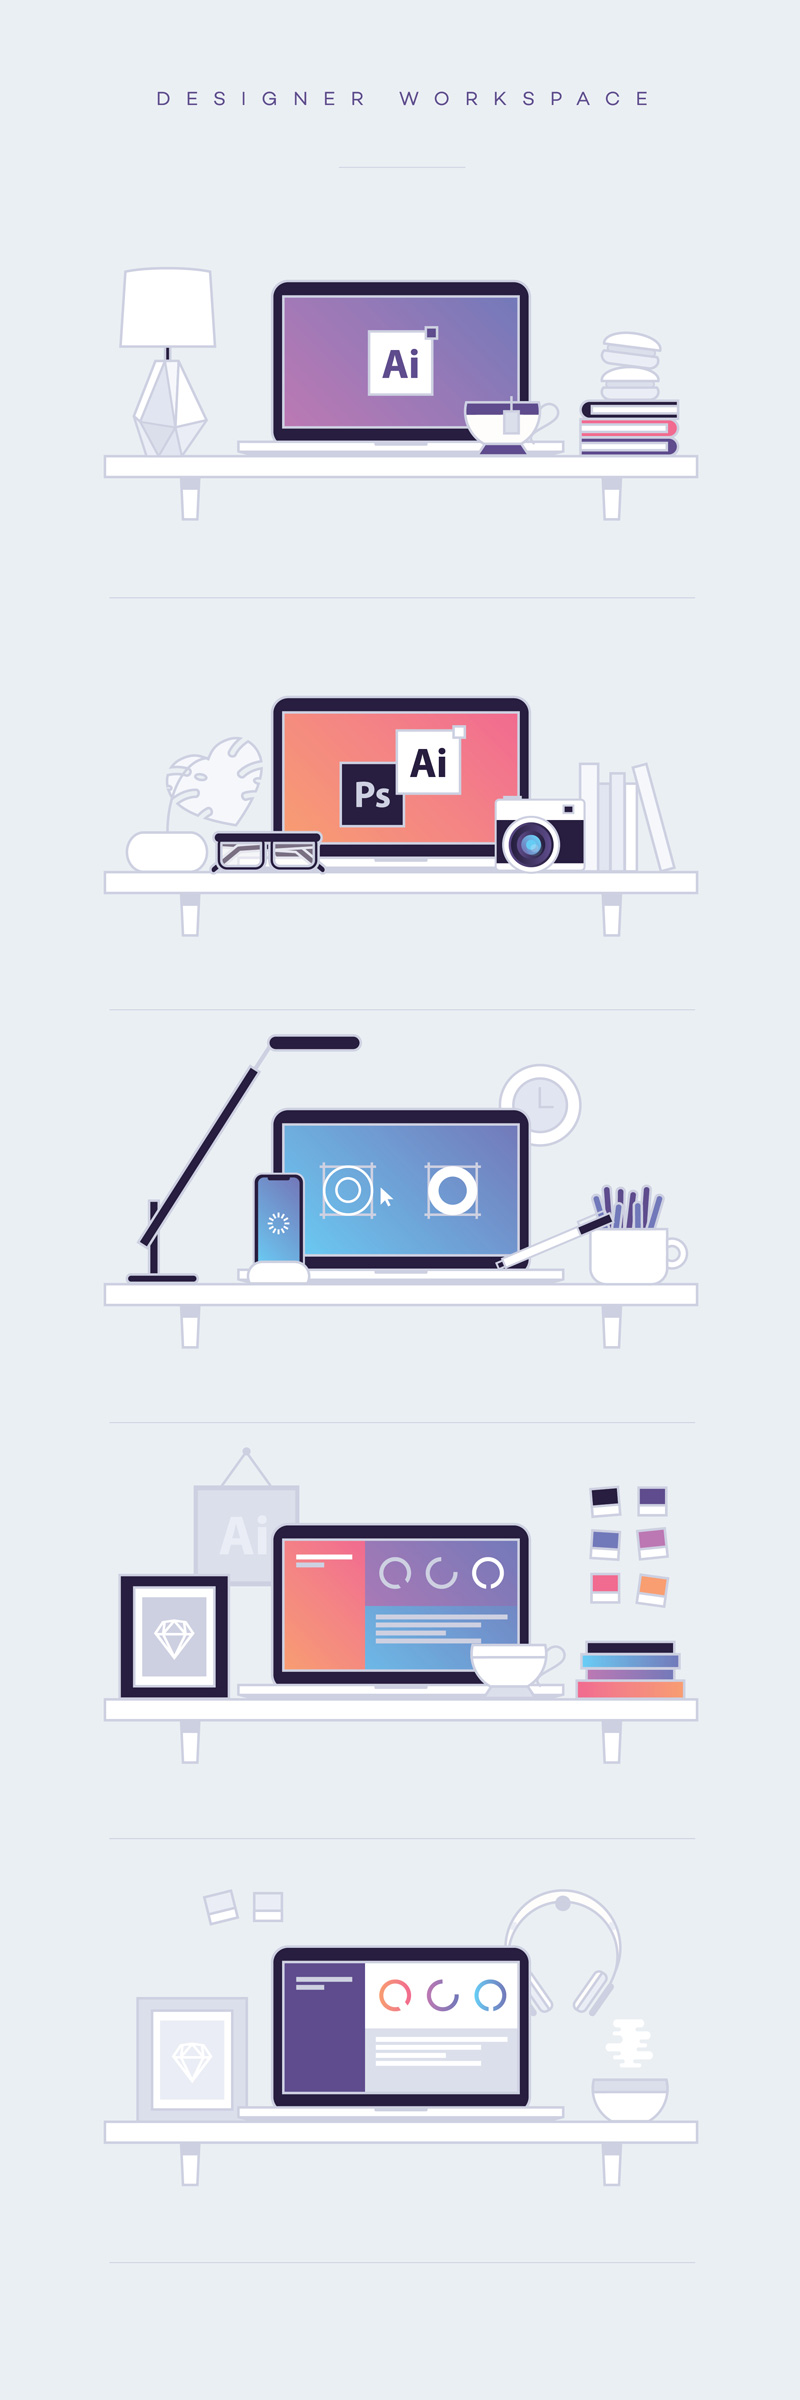 Free Designer Workspace Illustrations